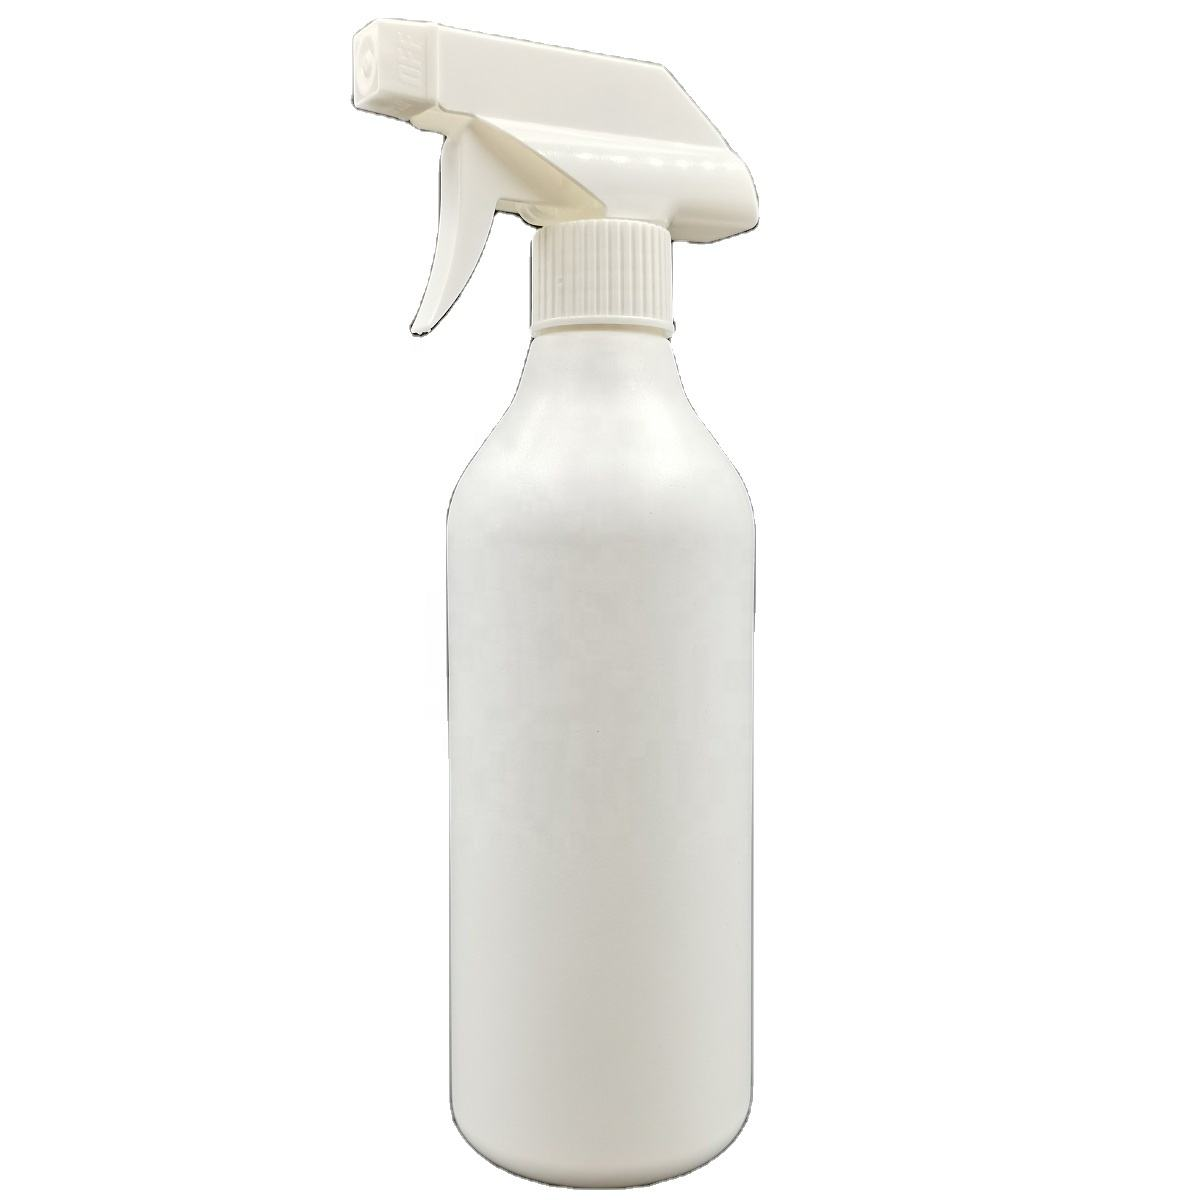 Hot style 500ml hand-clasped PE spray bottle with glossy surface for family use in 2021